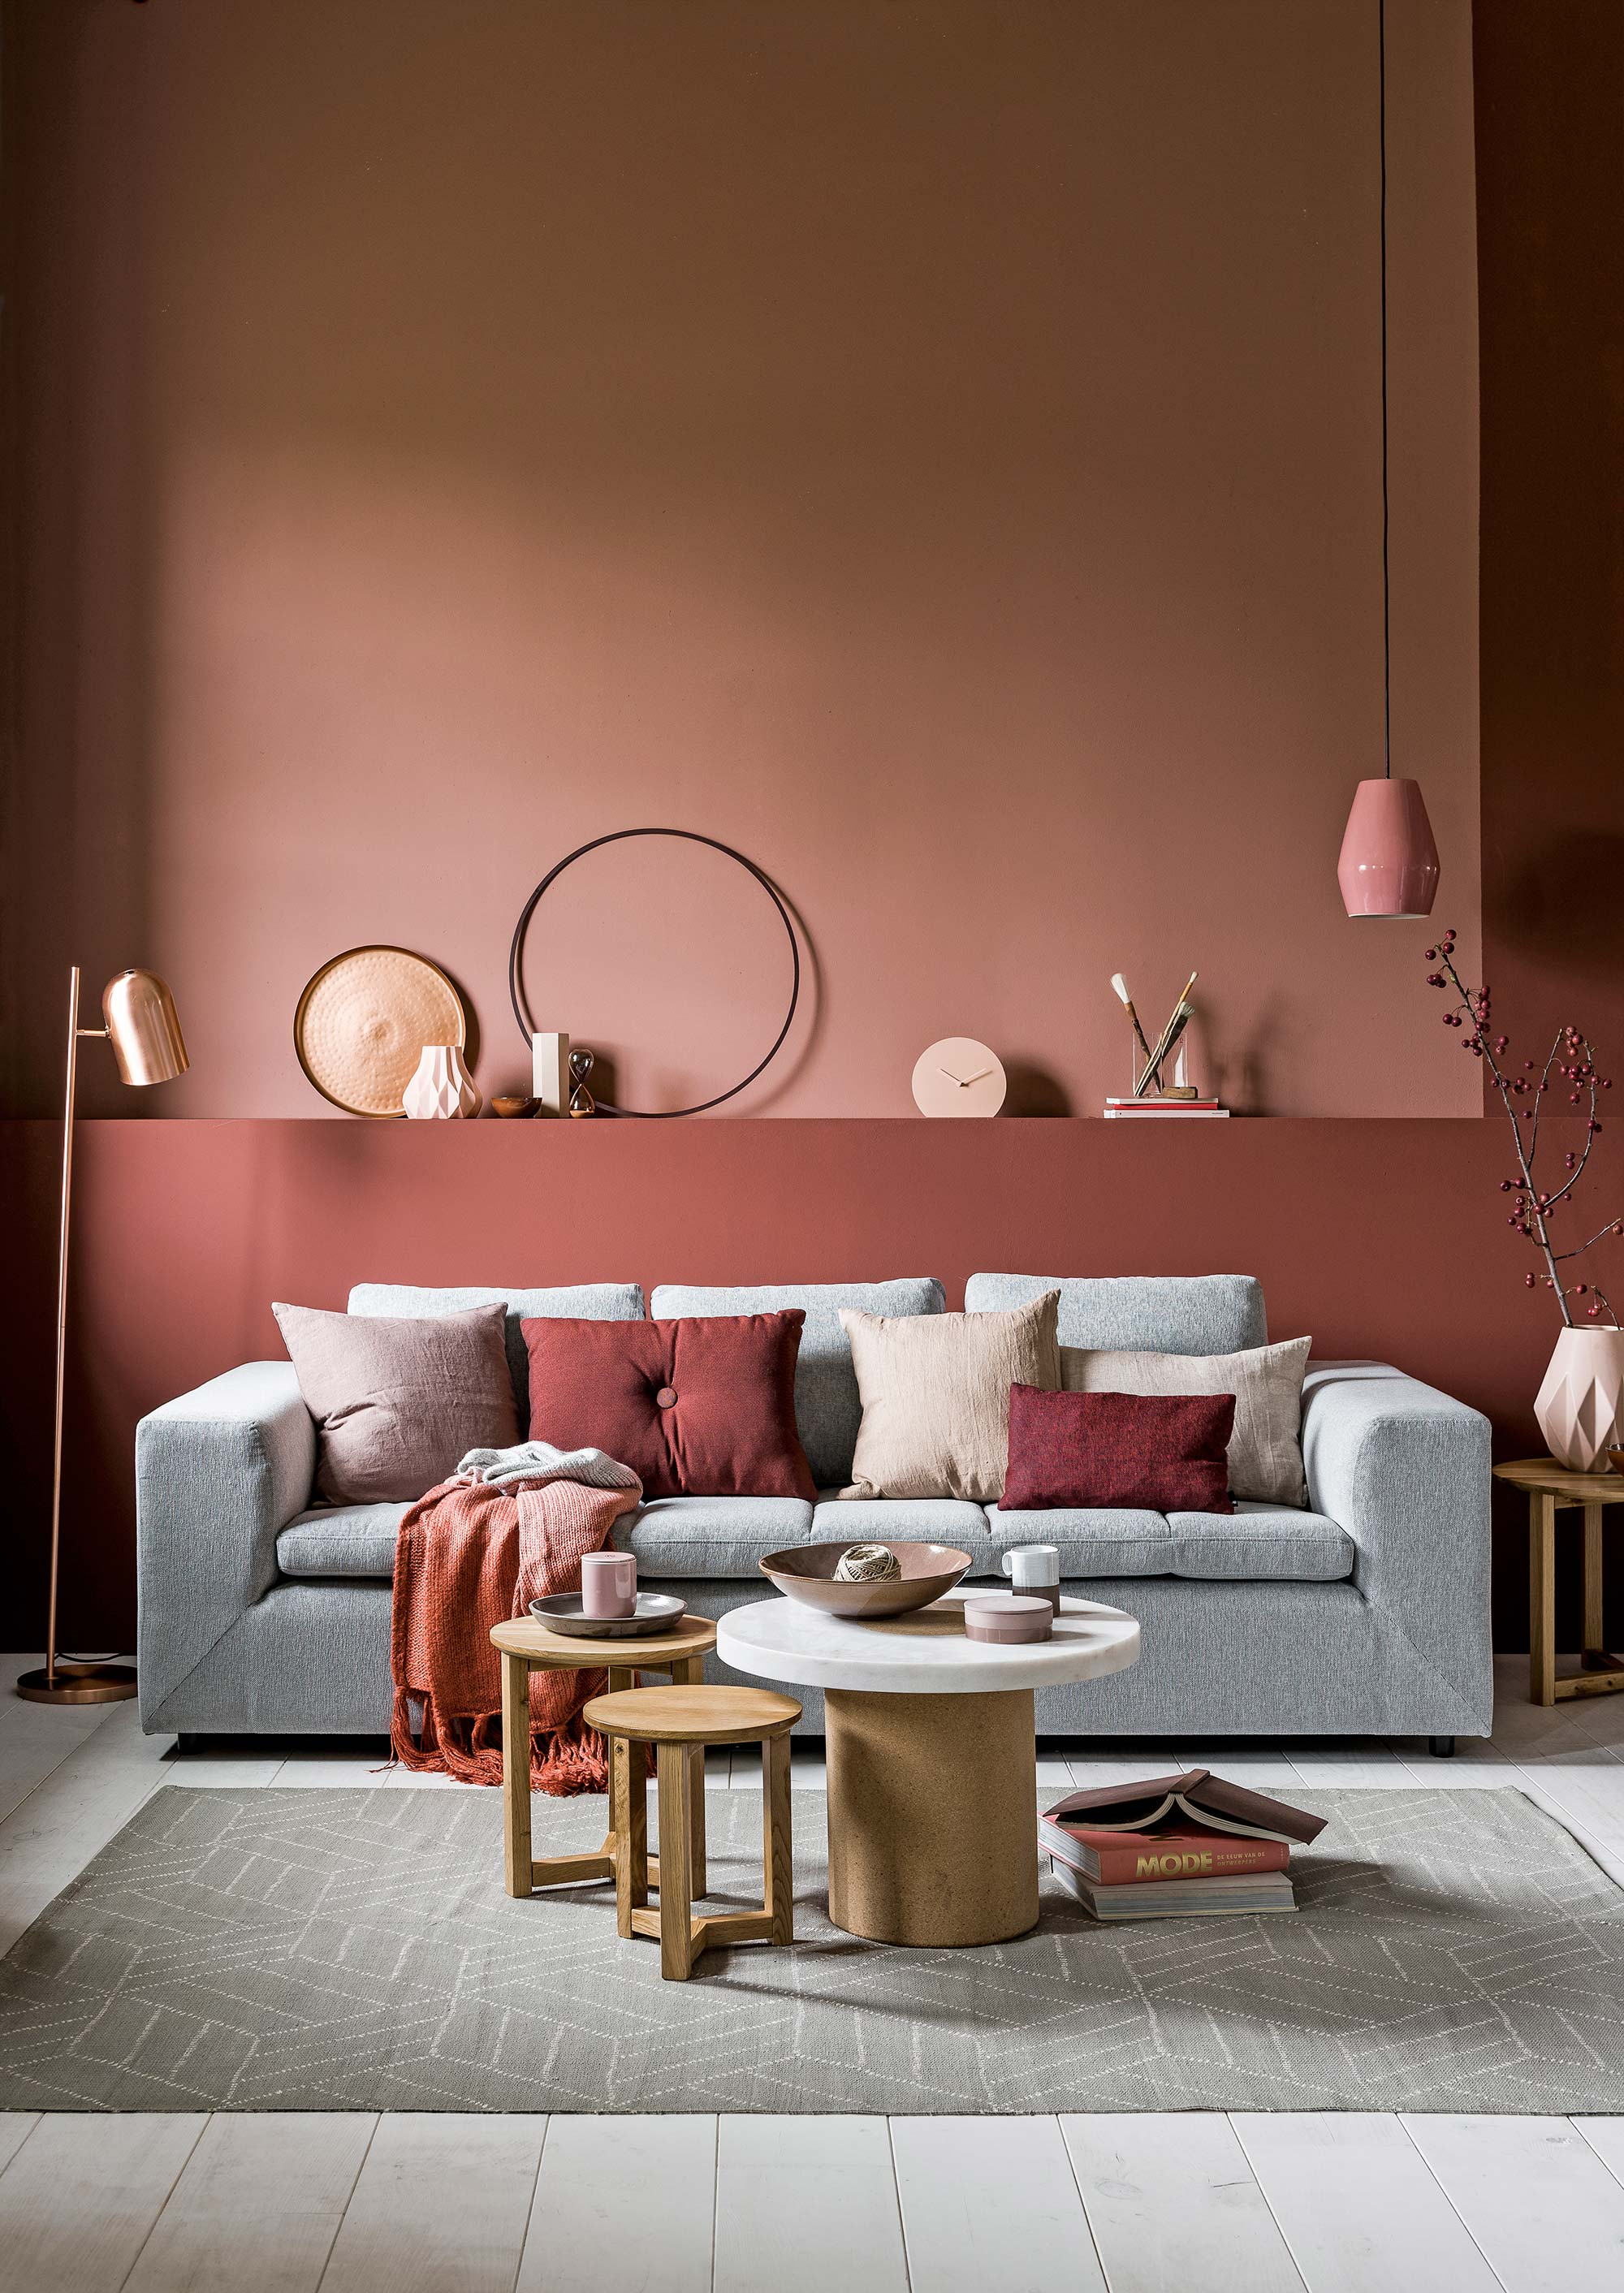 Pinterest des murs d cor s d co id es for Decorer un mur interieur